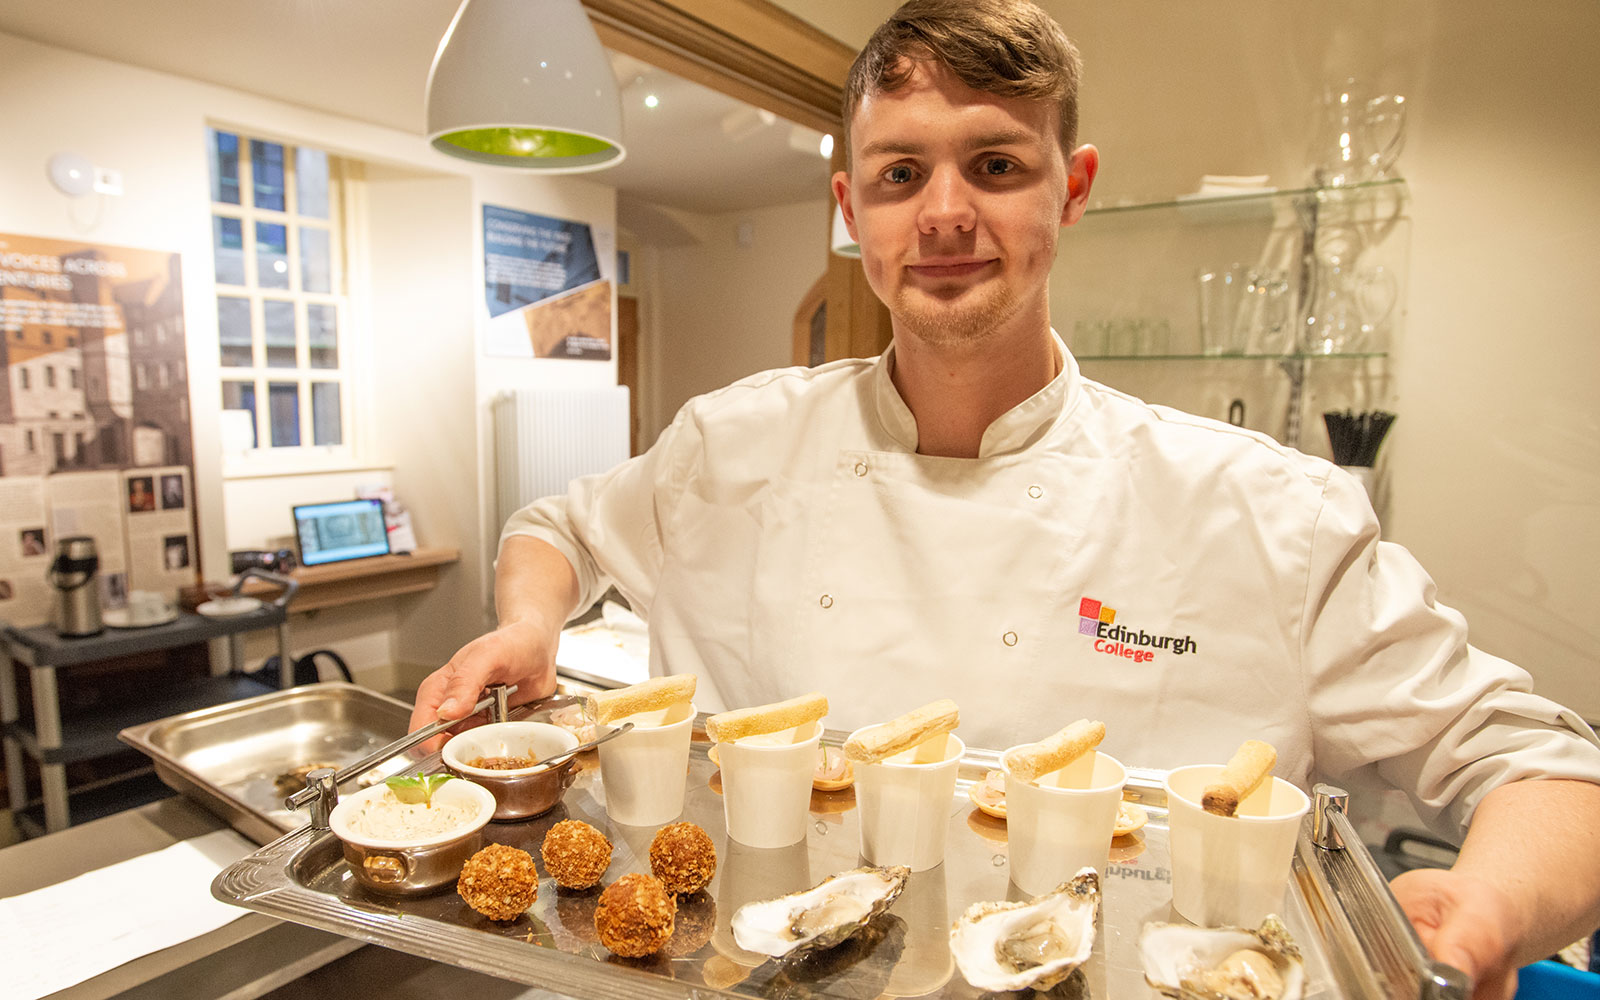 A Hospitality student from Edinburgh College shows off culinary creations based on medieval Scottish recipes